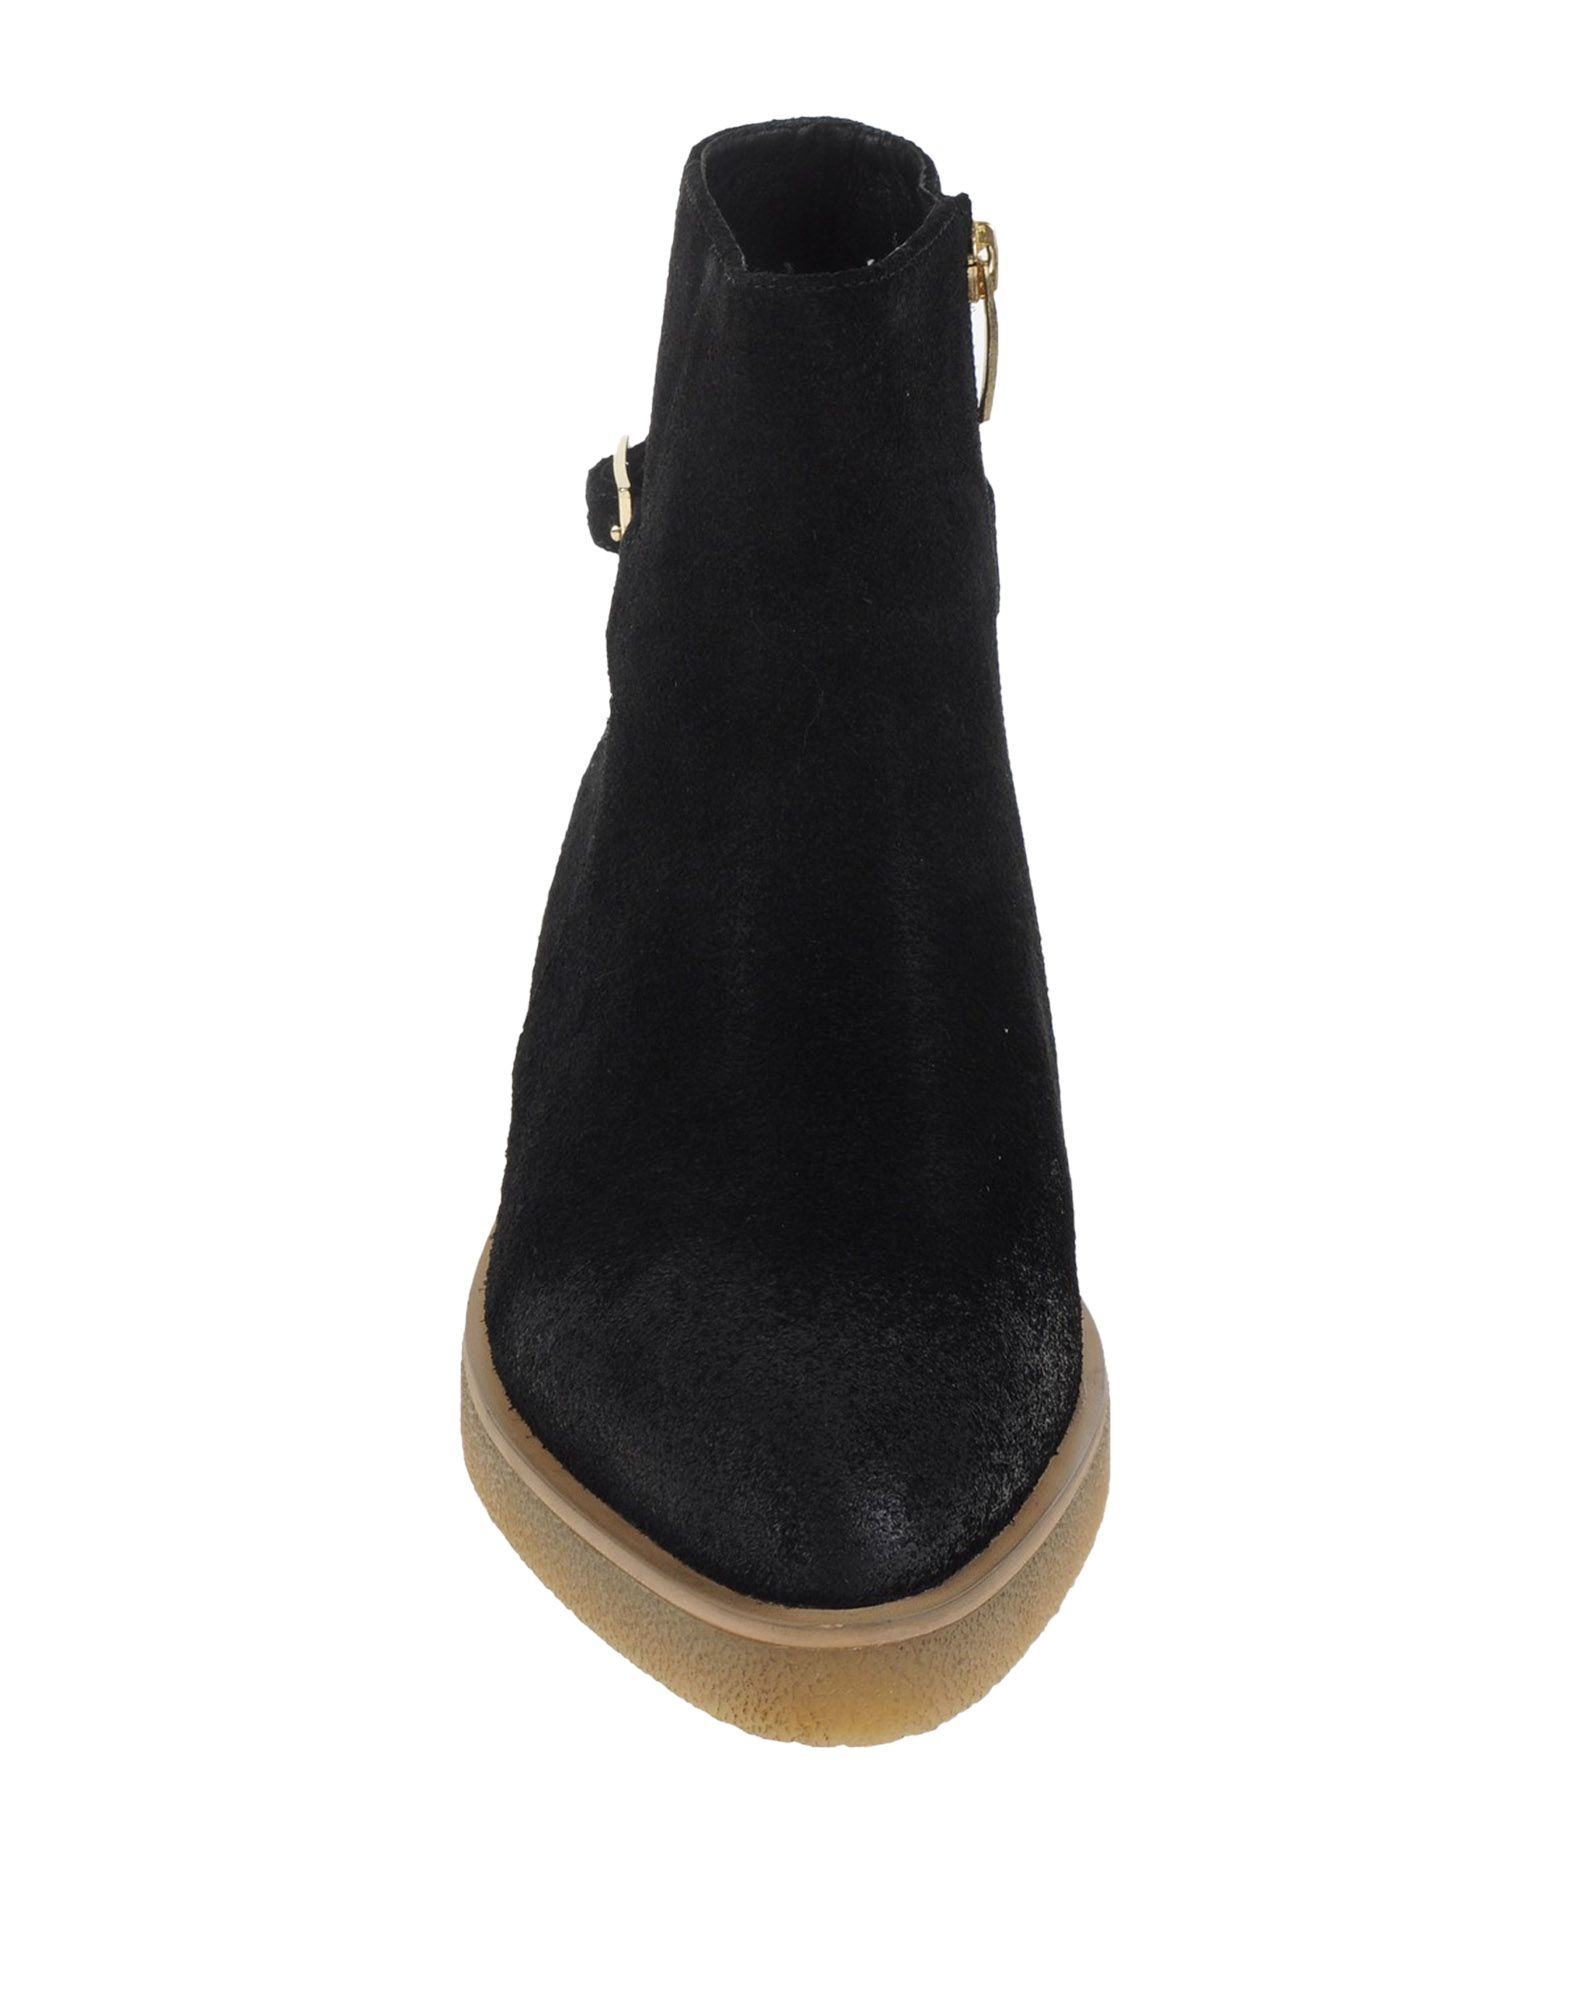 Bottine Bruno Premi Femme - Bottines Bruno Premi sur